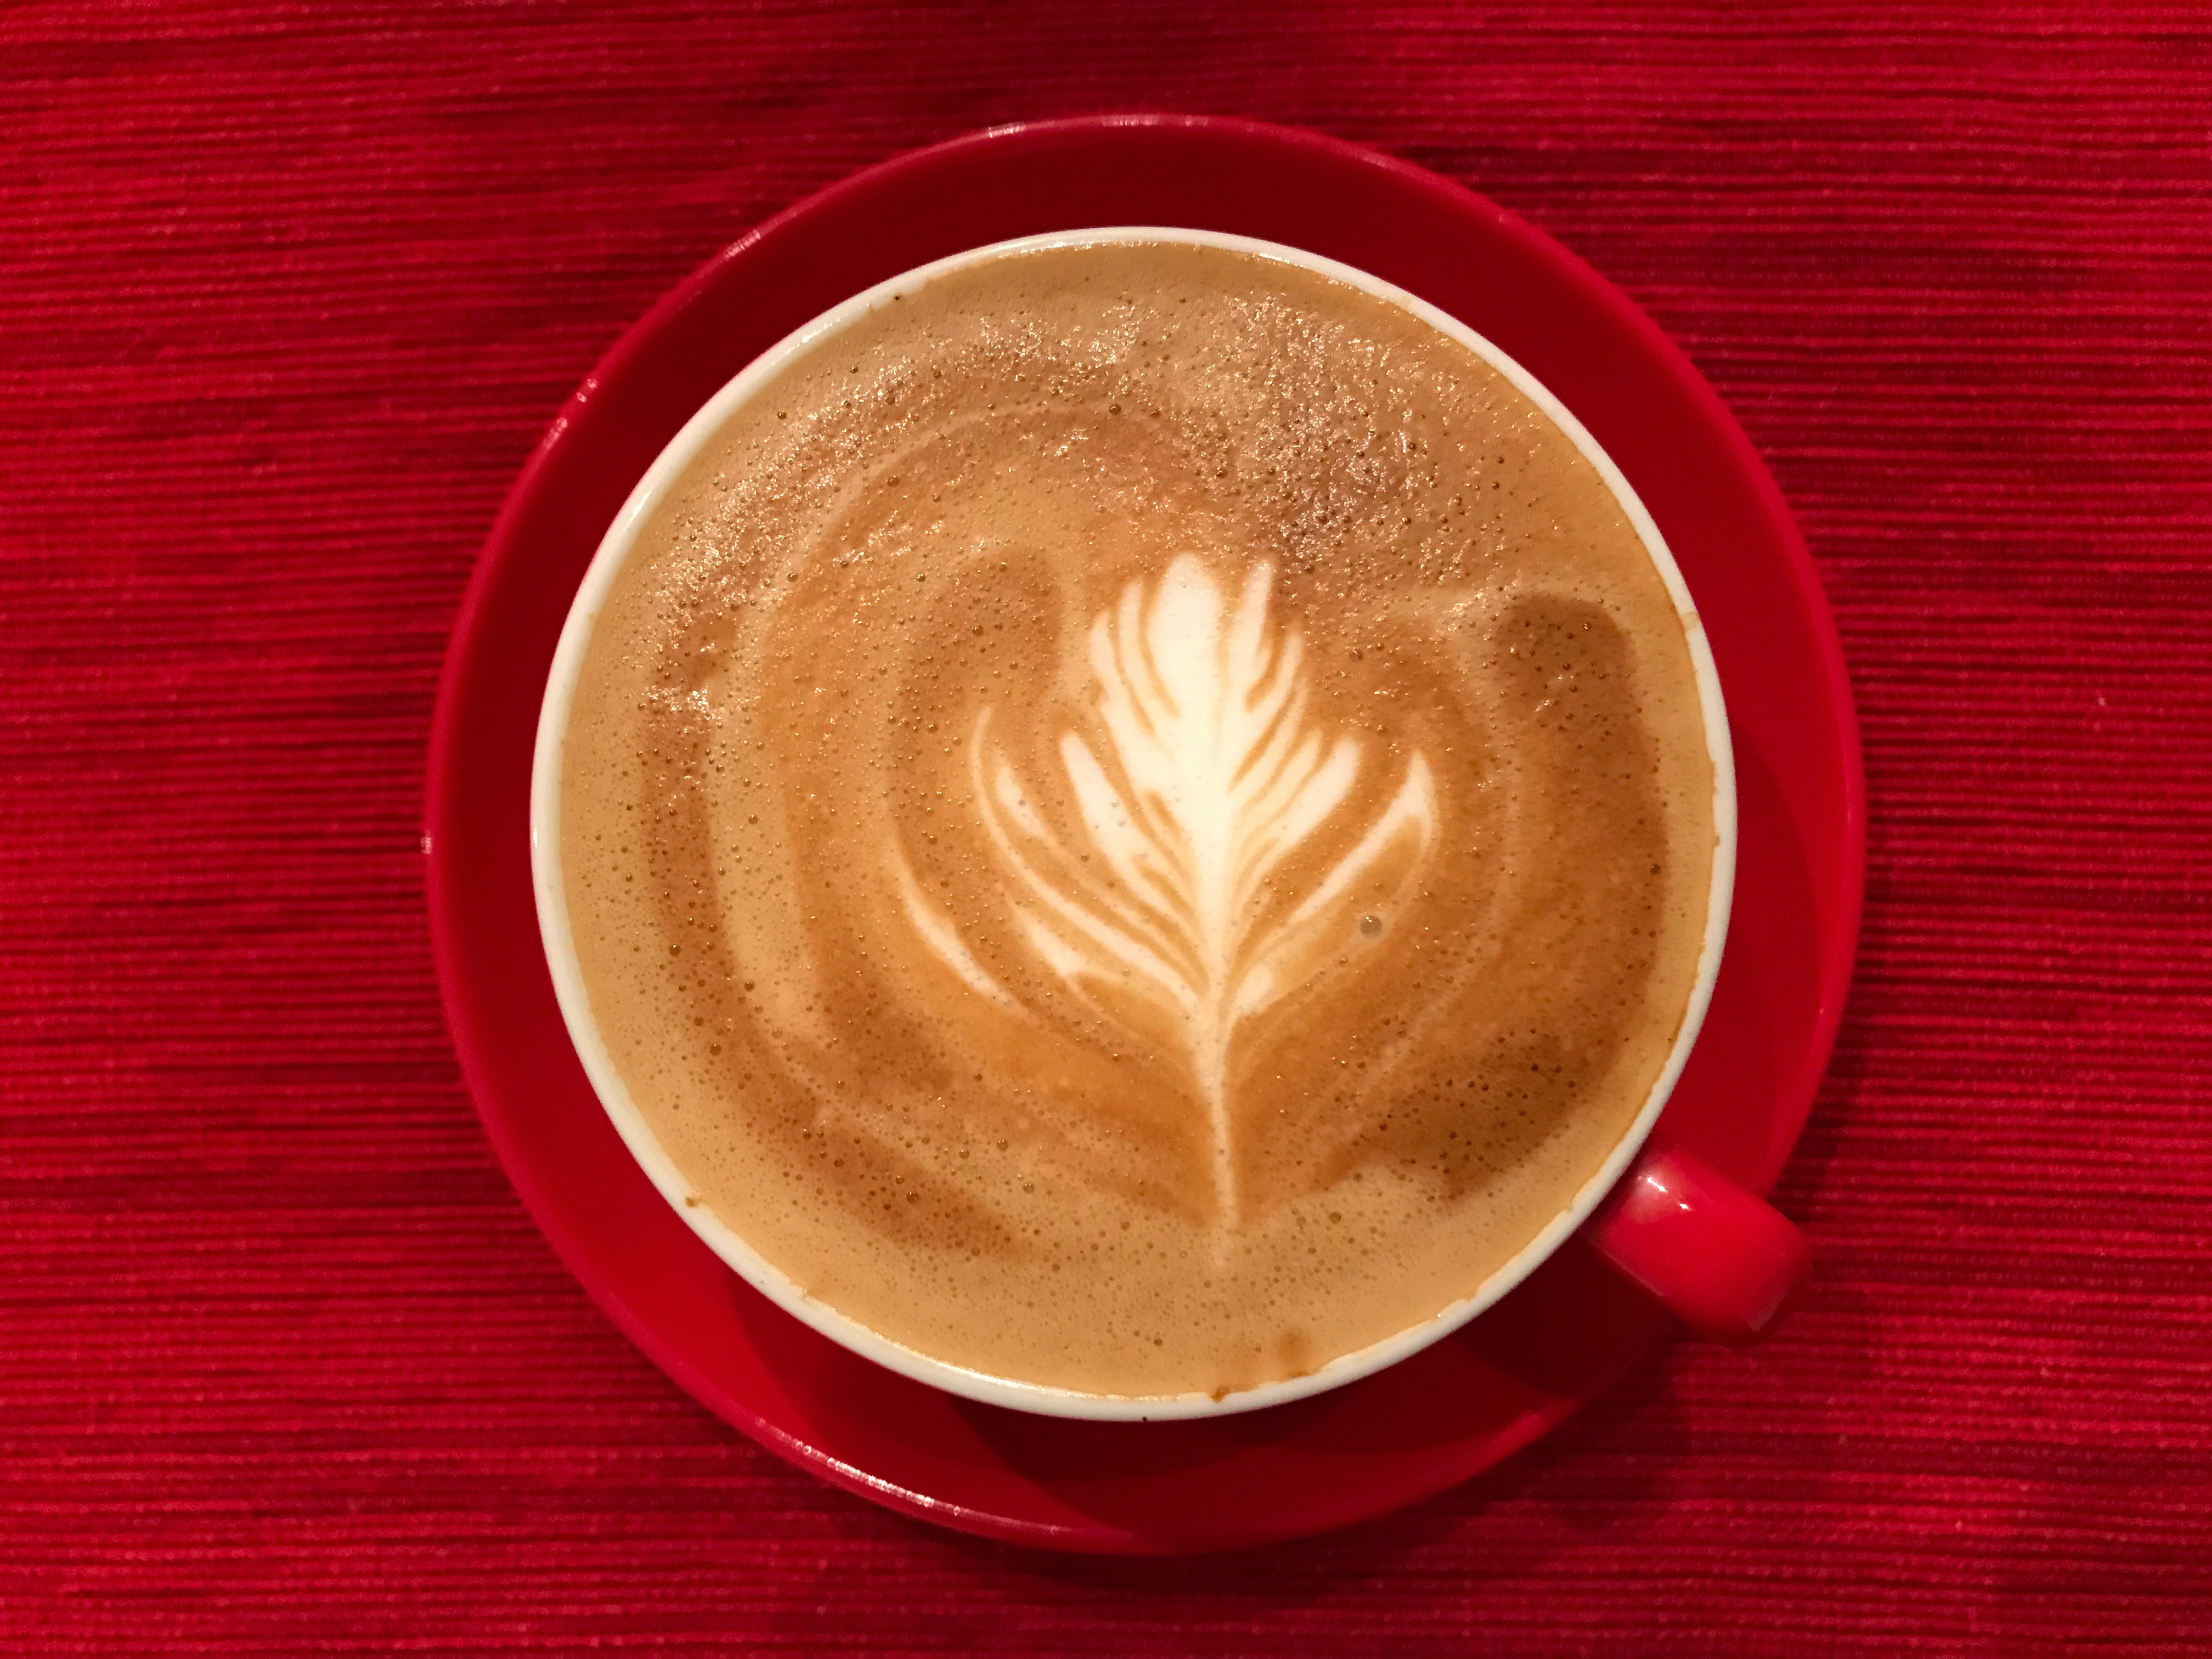 latte art on red background